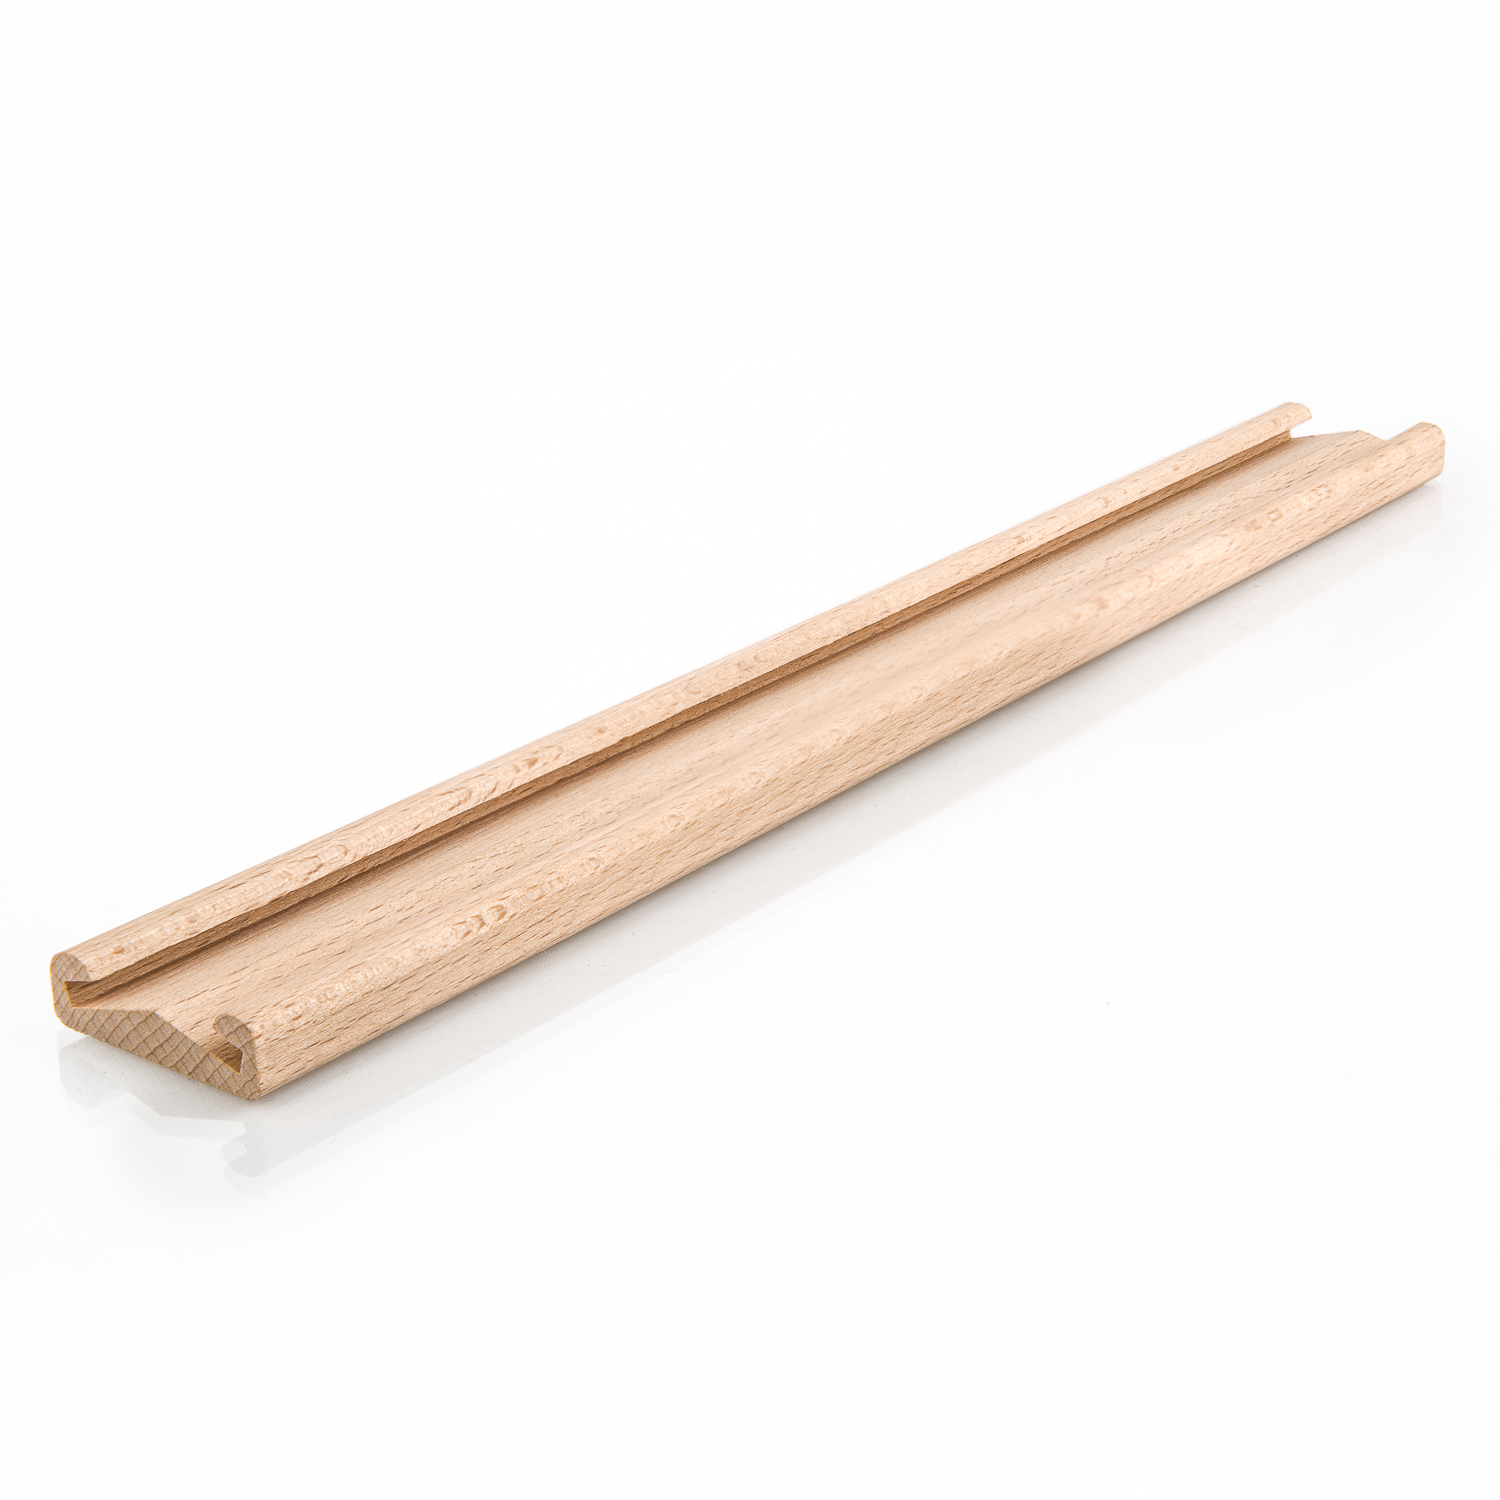 Wooden Channel 40 Long 24 95 In Addition To The Rug Hooking Gripper Strips